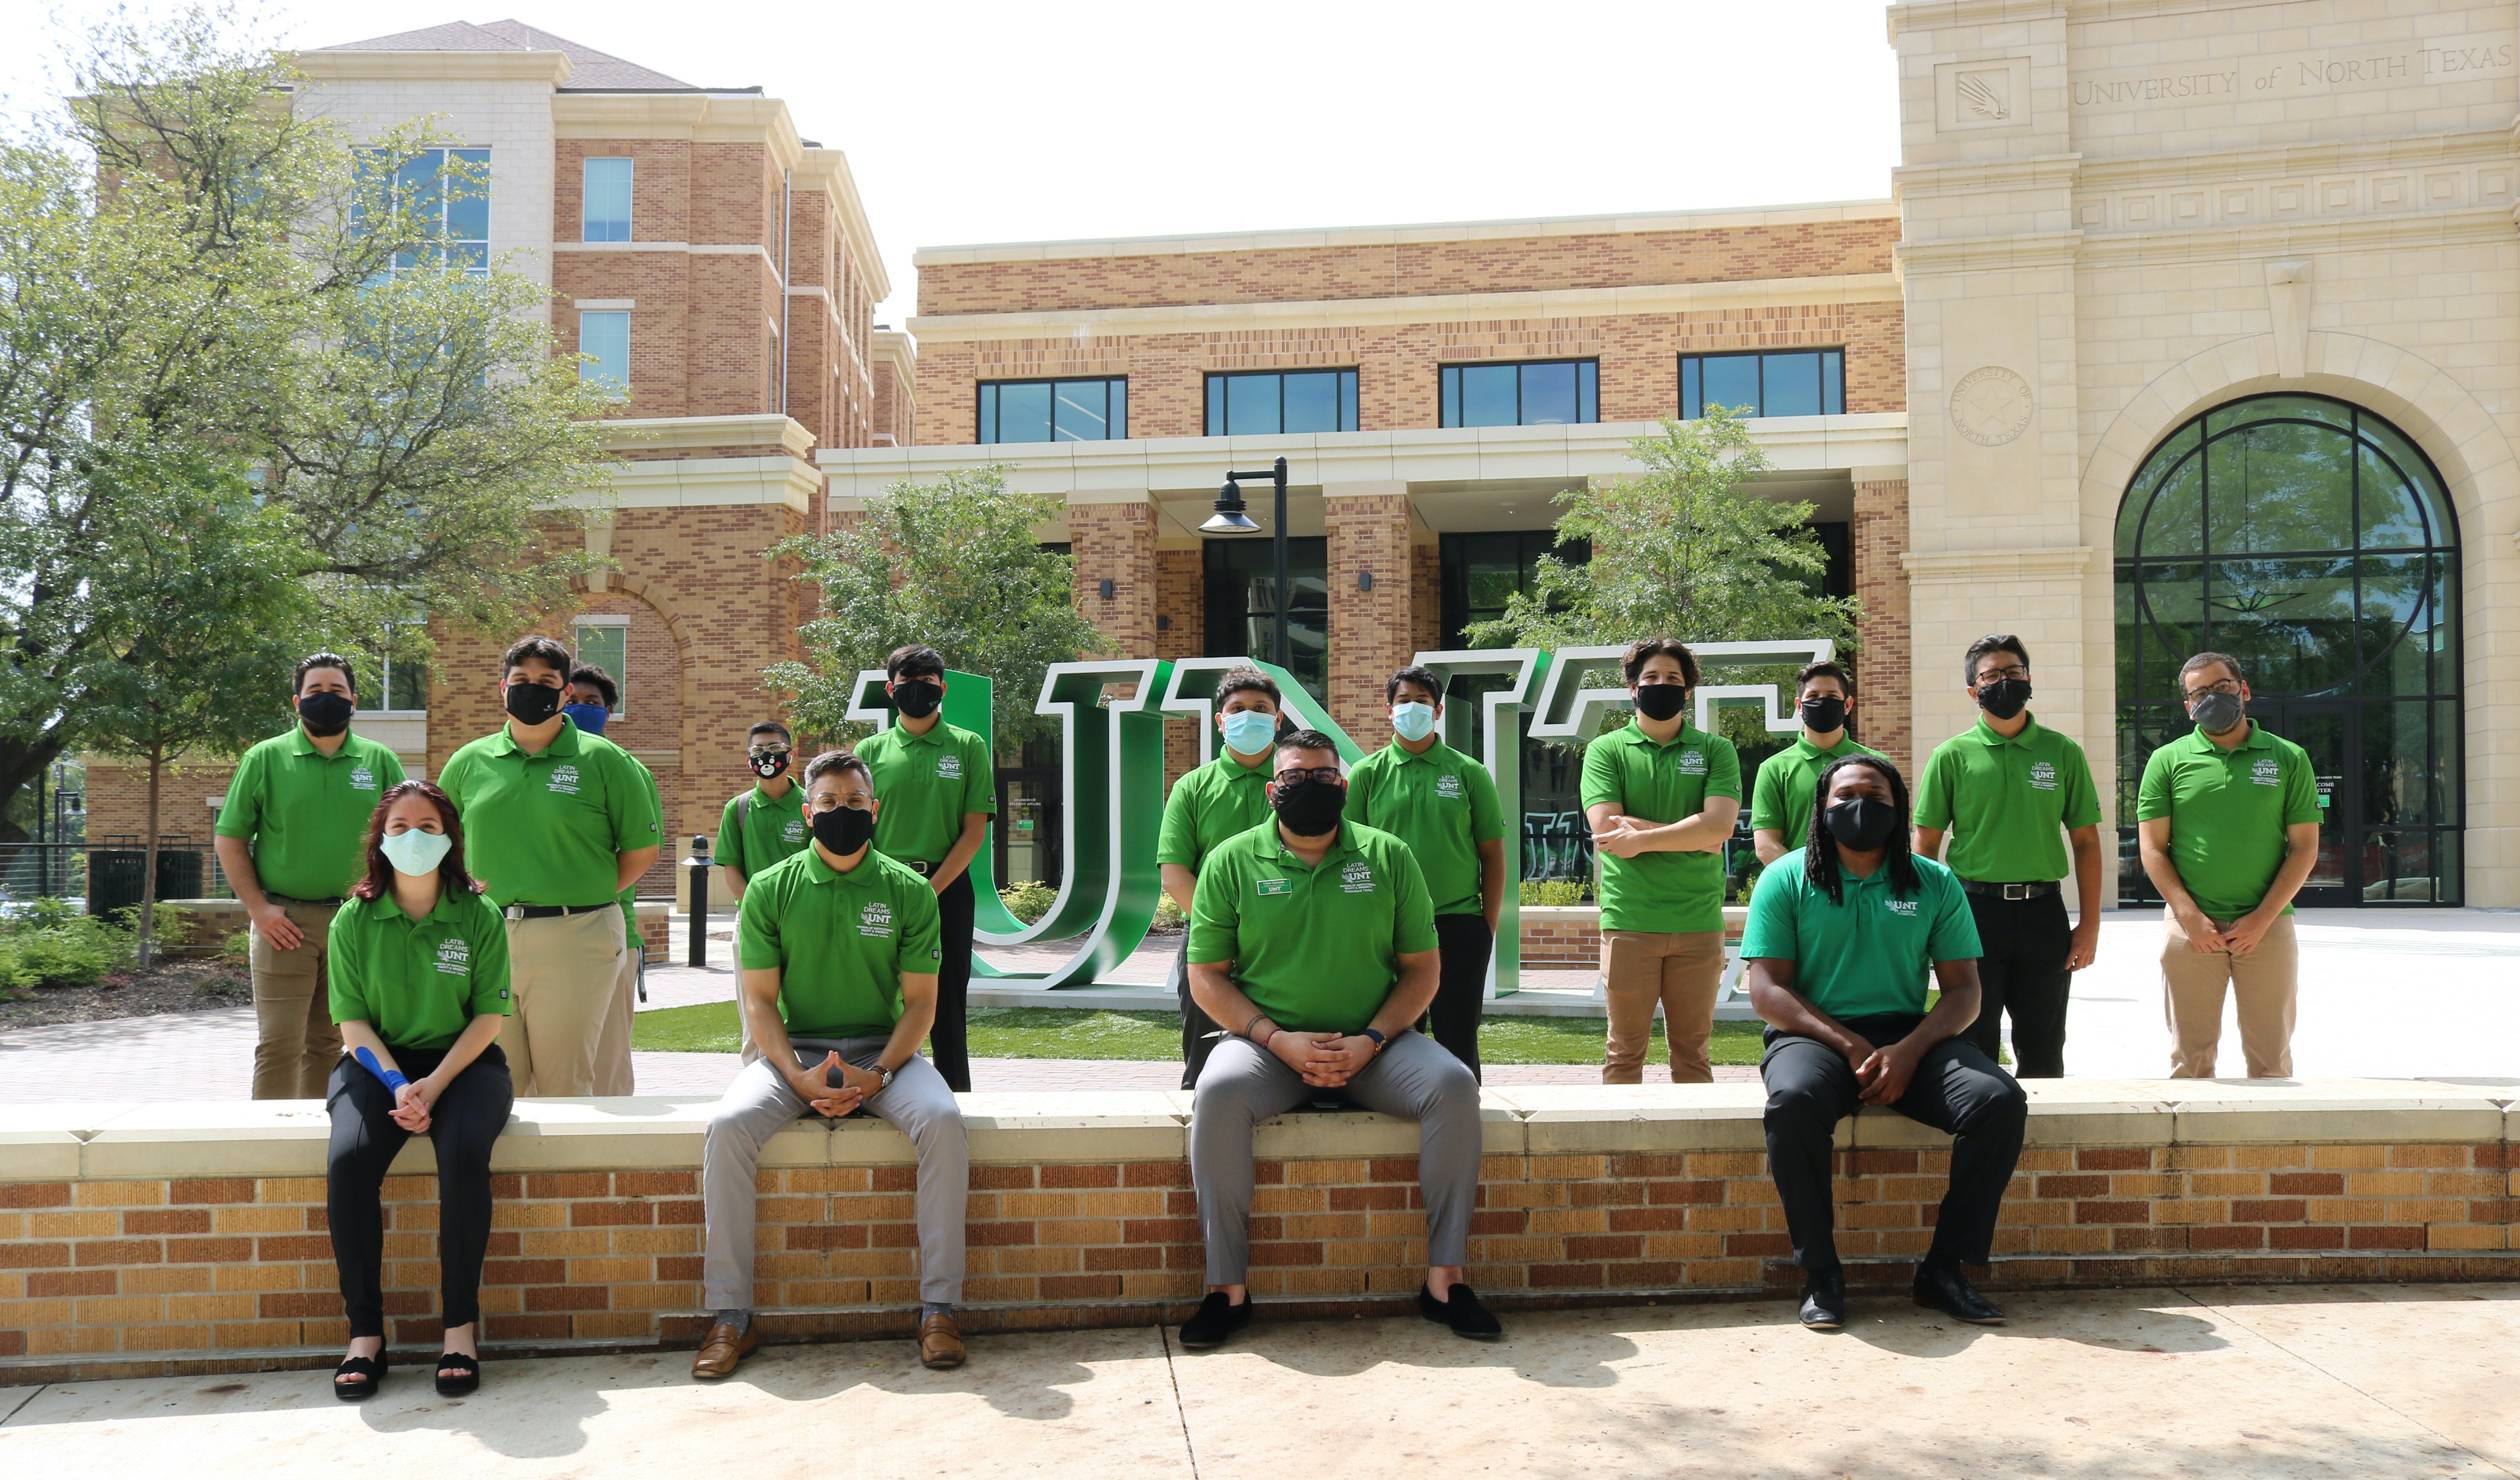 Latin Dreams mentors and students sitting in front of UNT sign